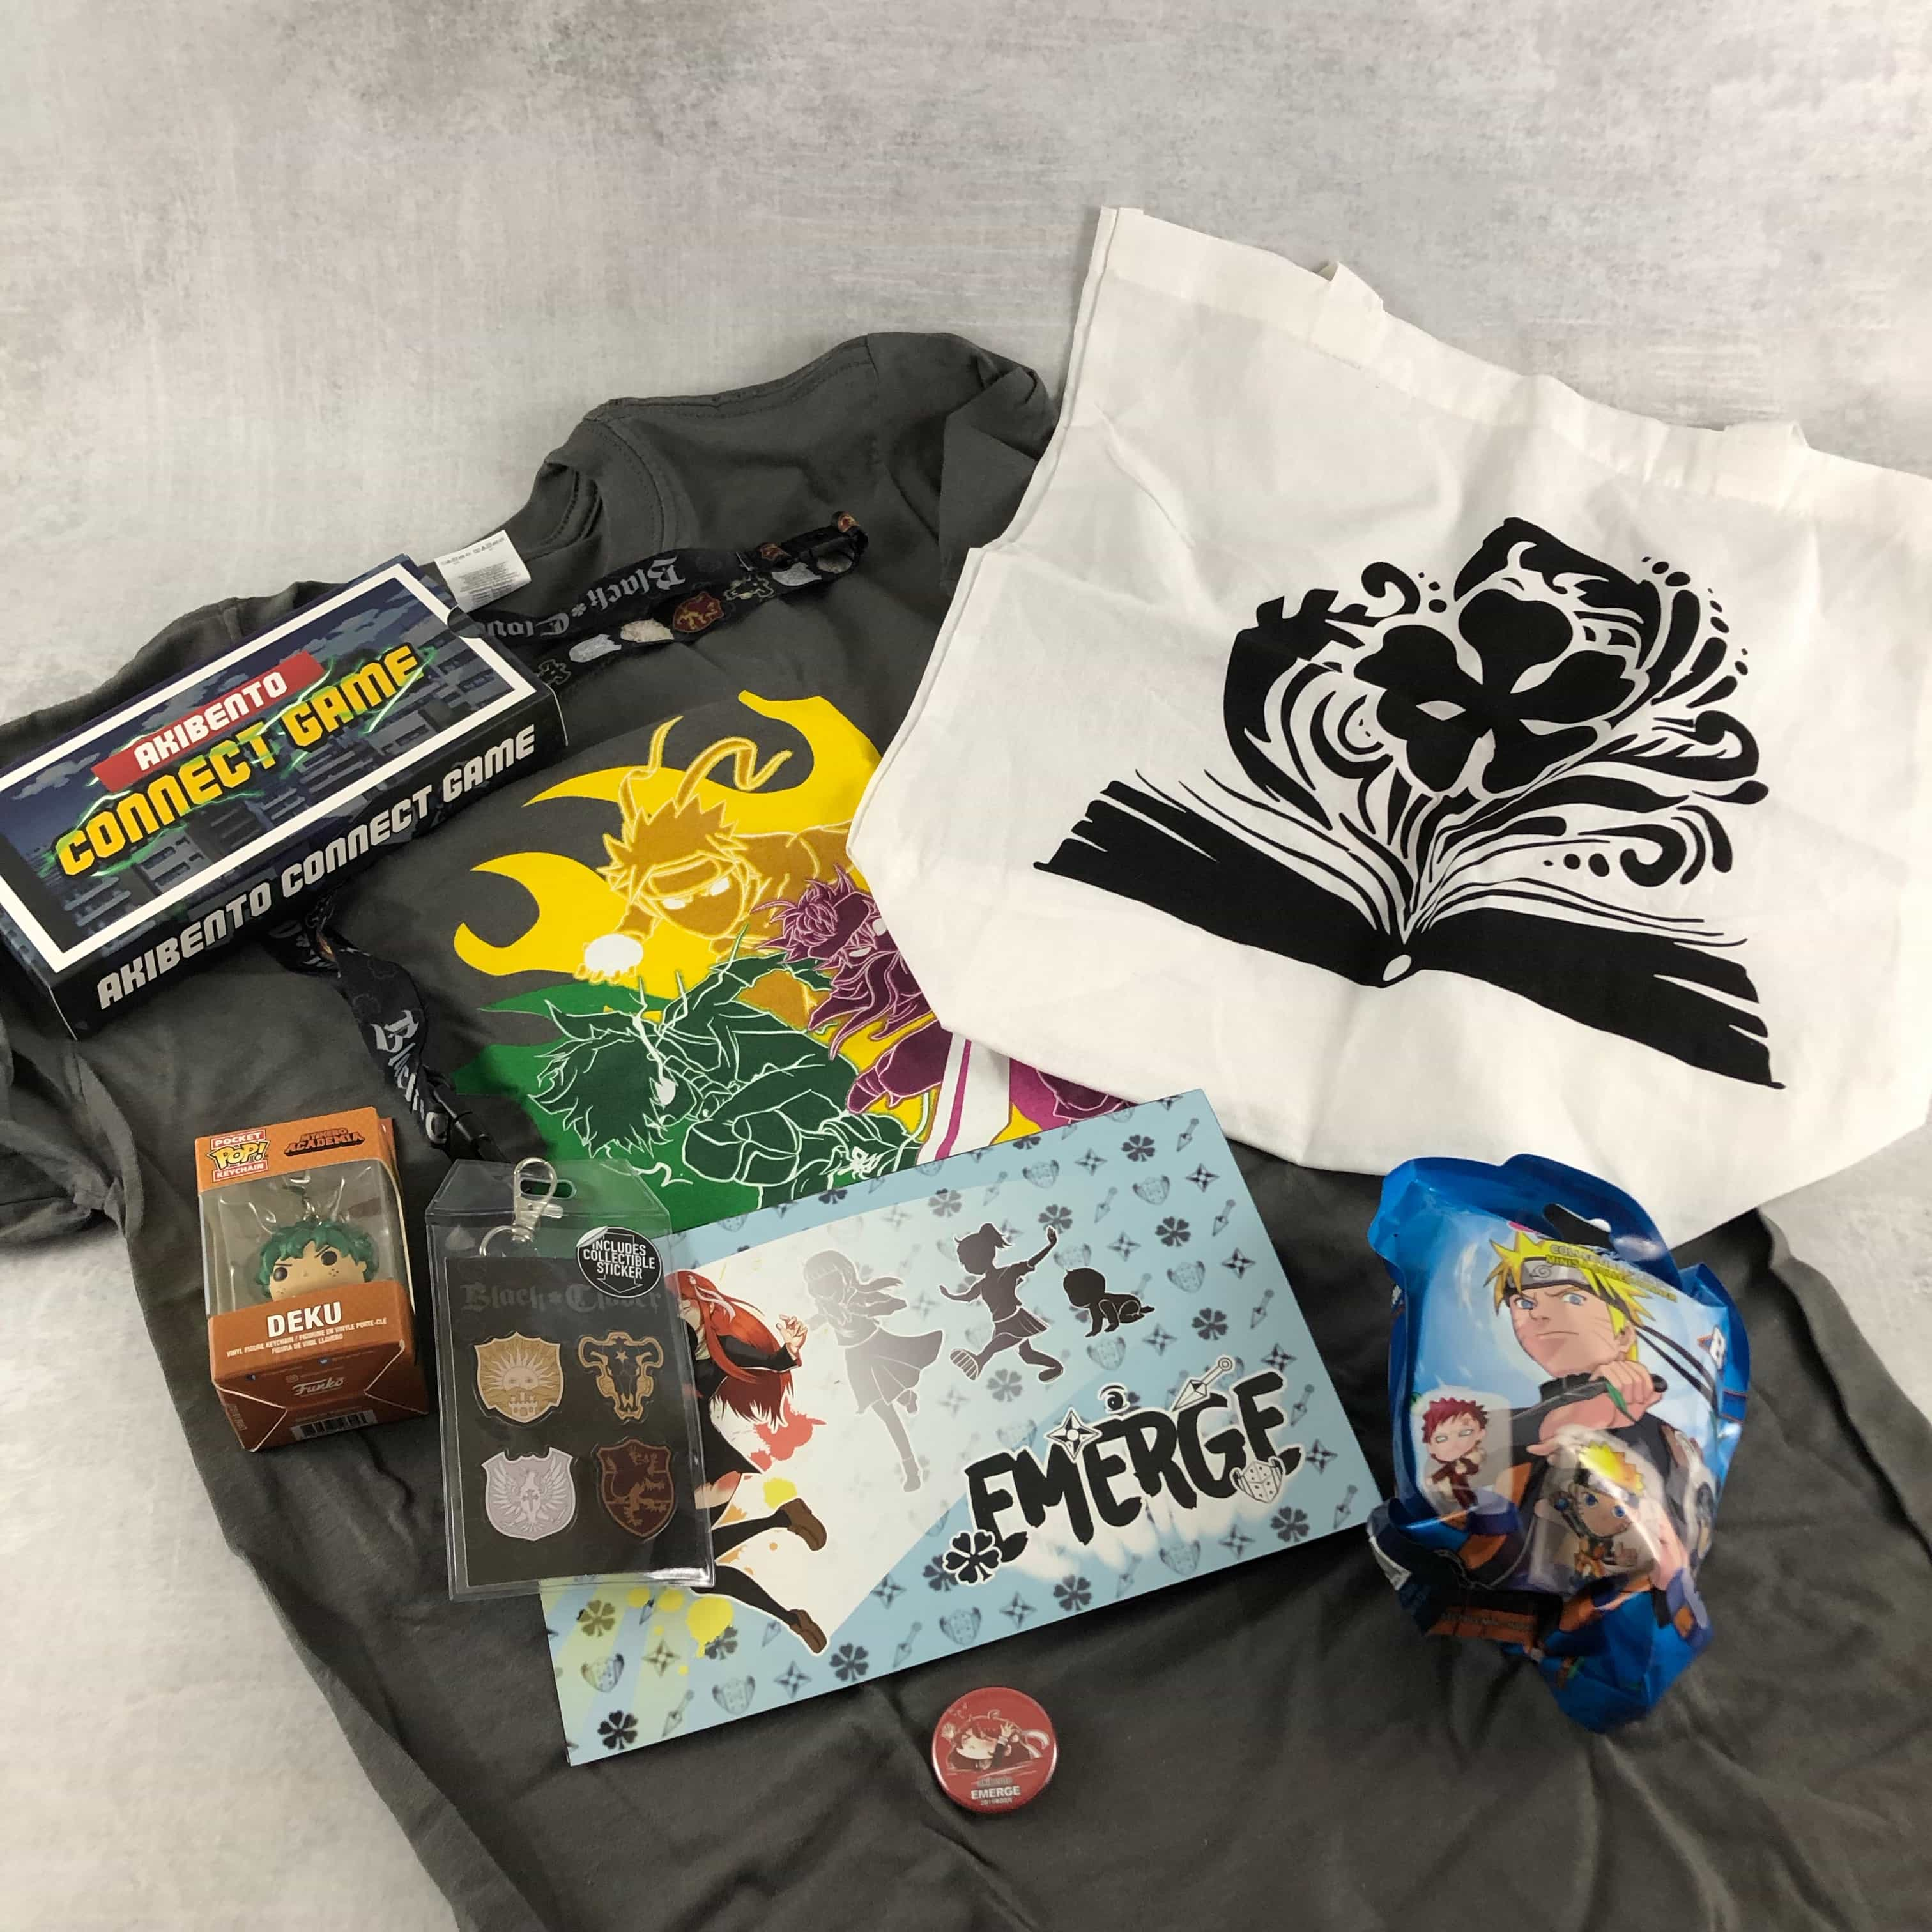 Akibento February 2019 Subscription Box Review & Coupon – EMERGE